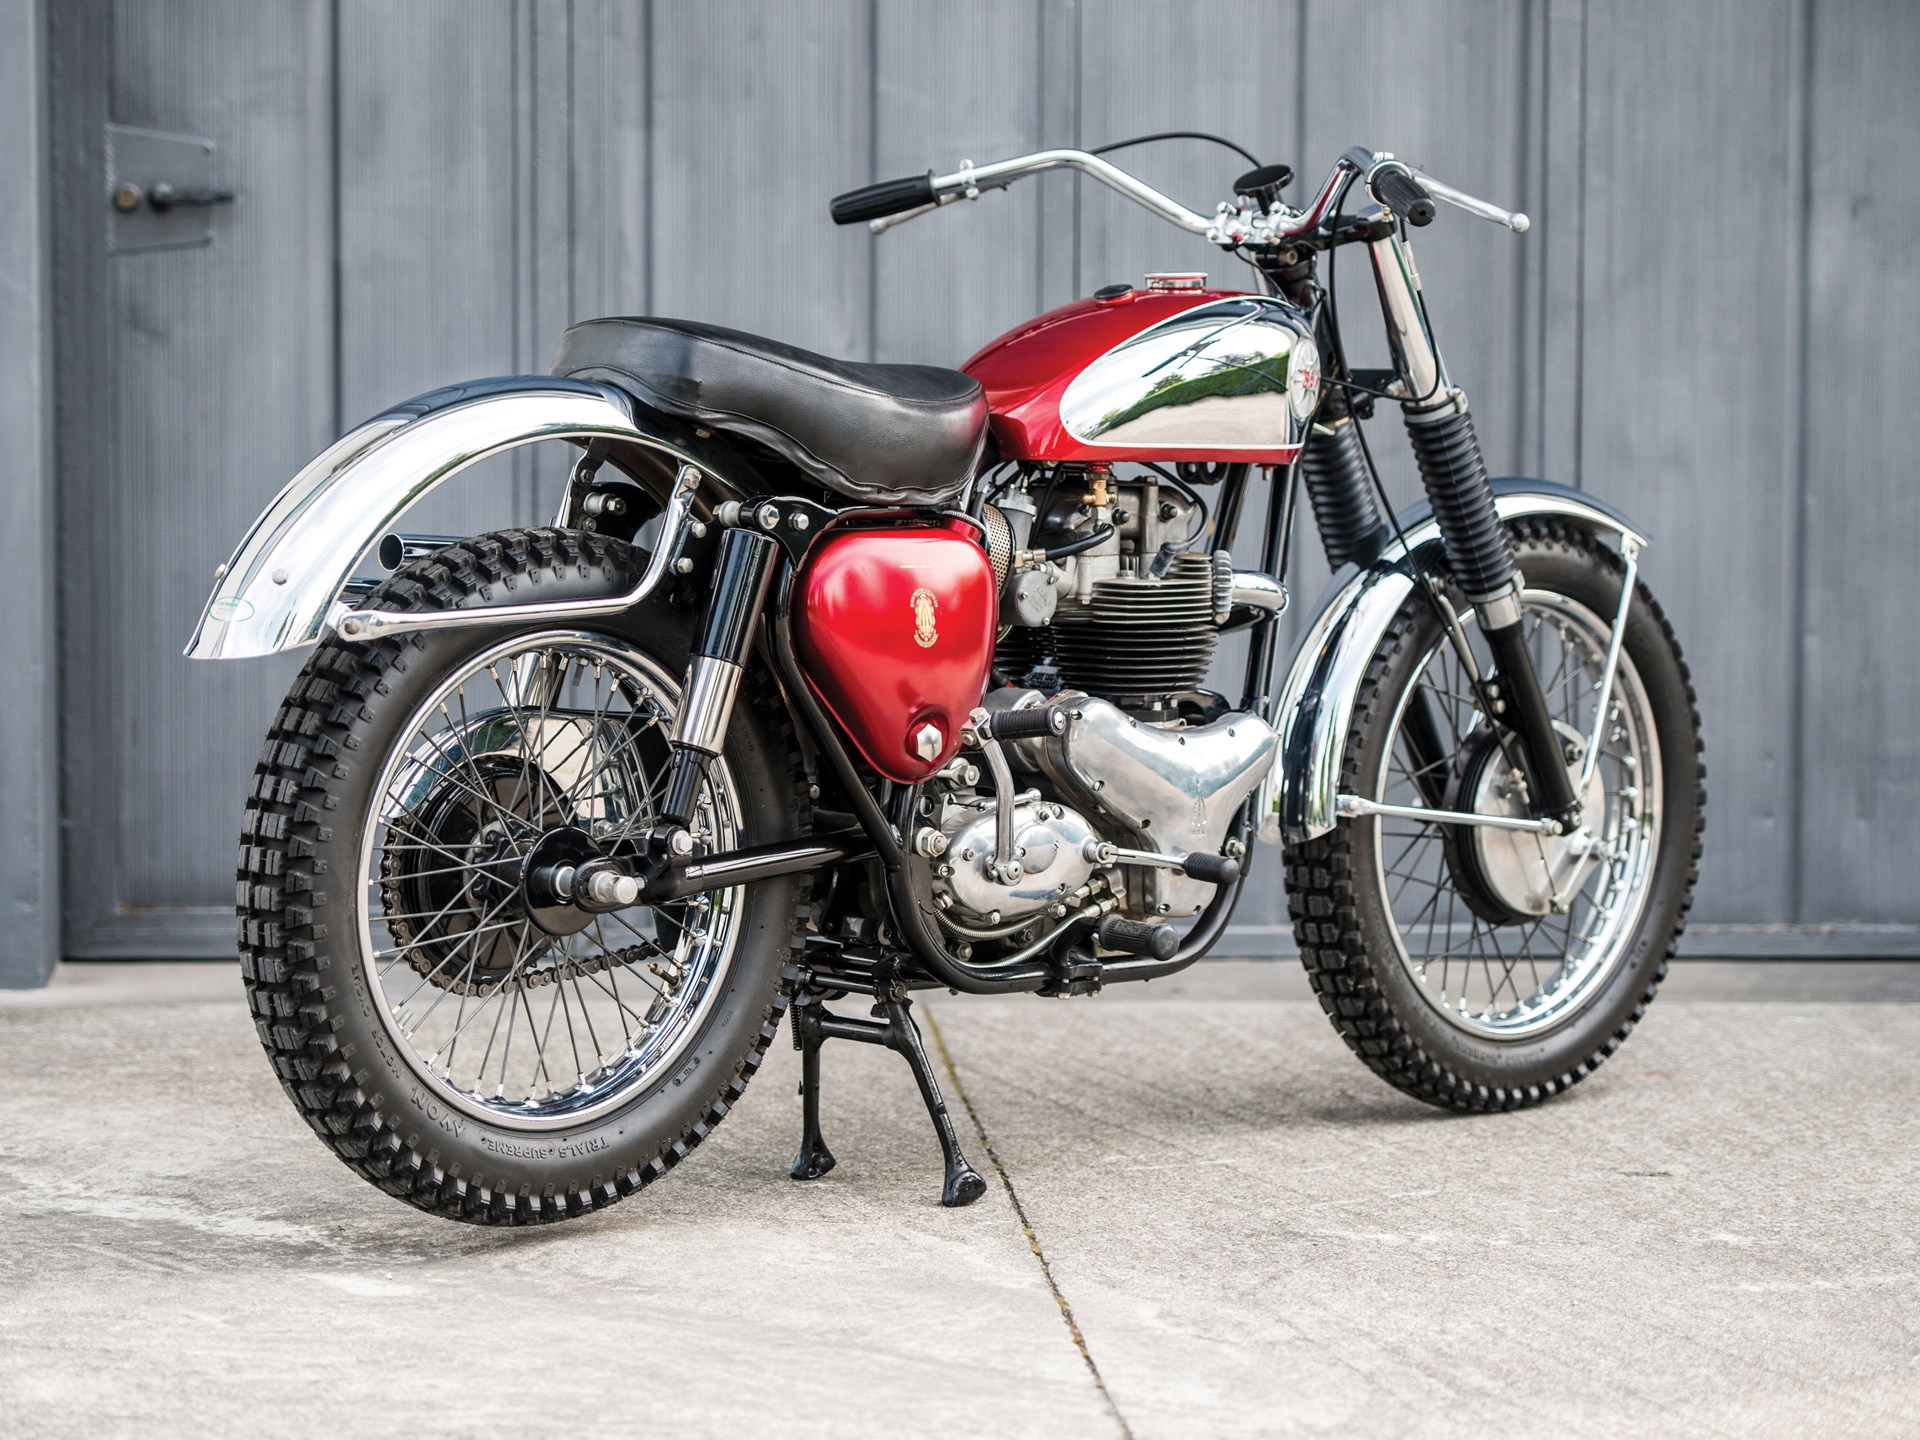 1962 BSA A10 Rocket Gold Star Scrambler